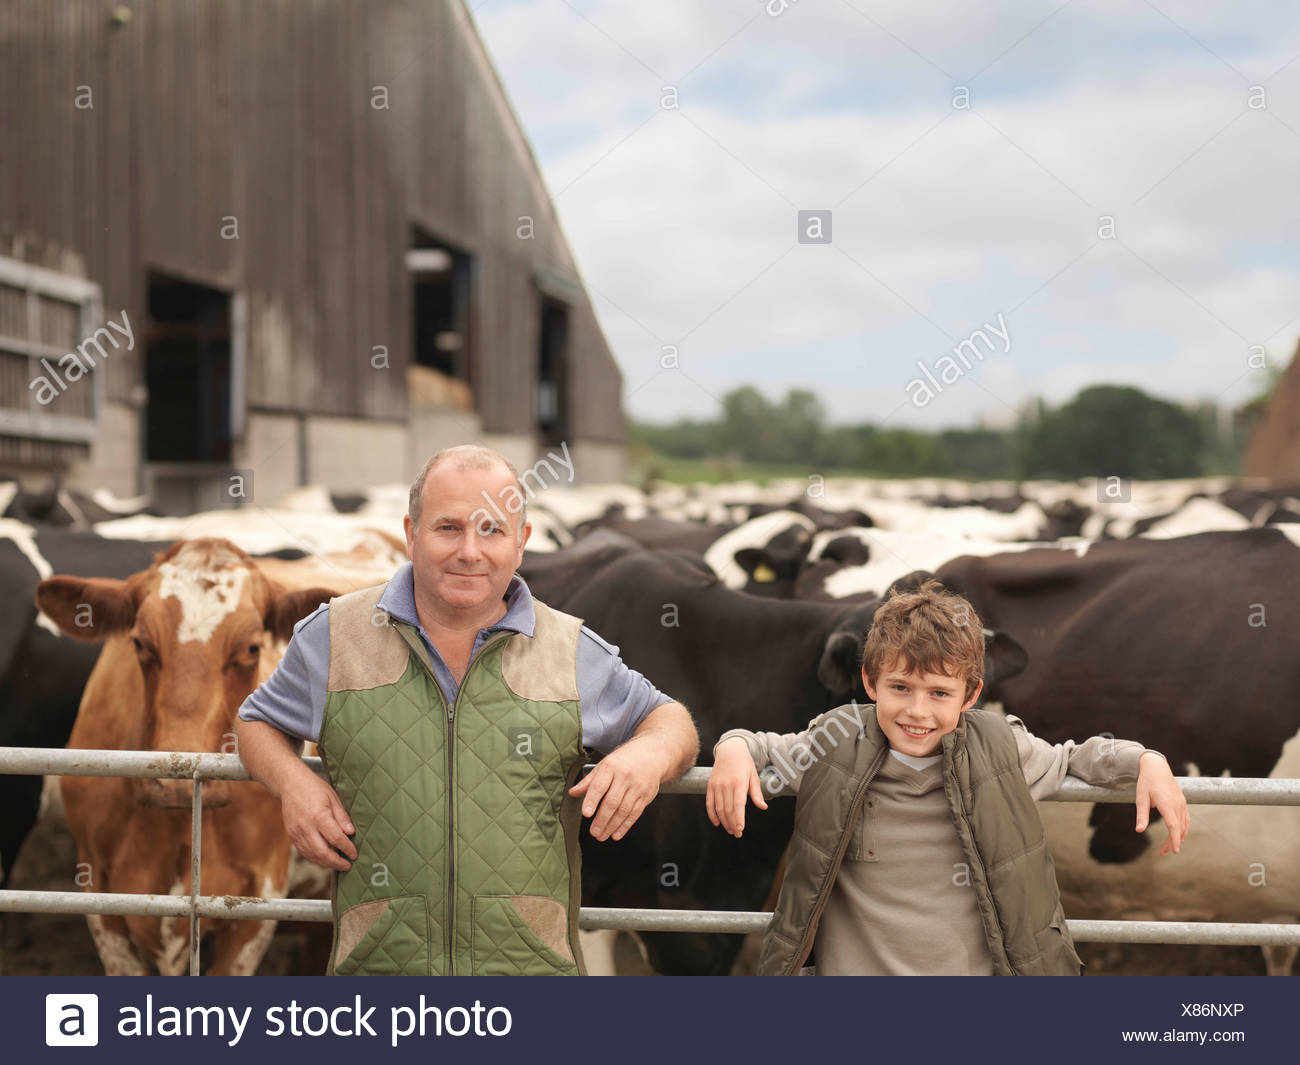 Farmer And Son With Cows - Stock Image